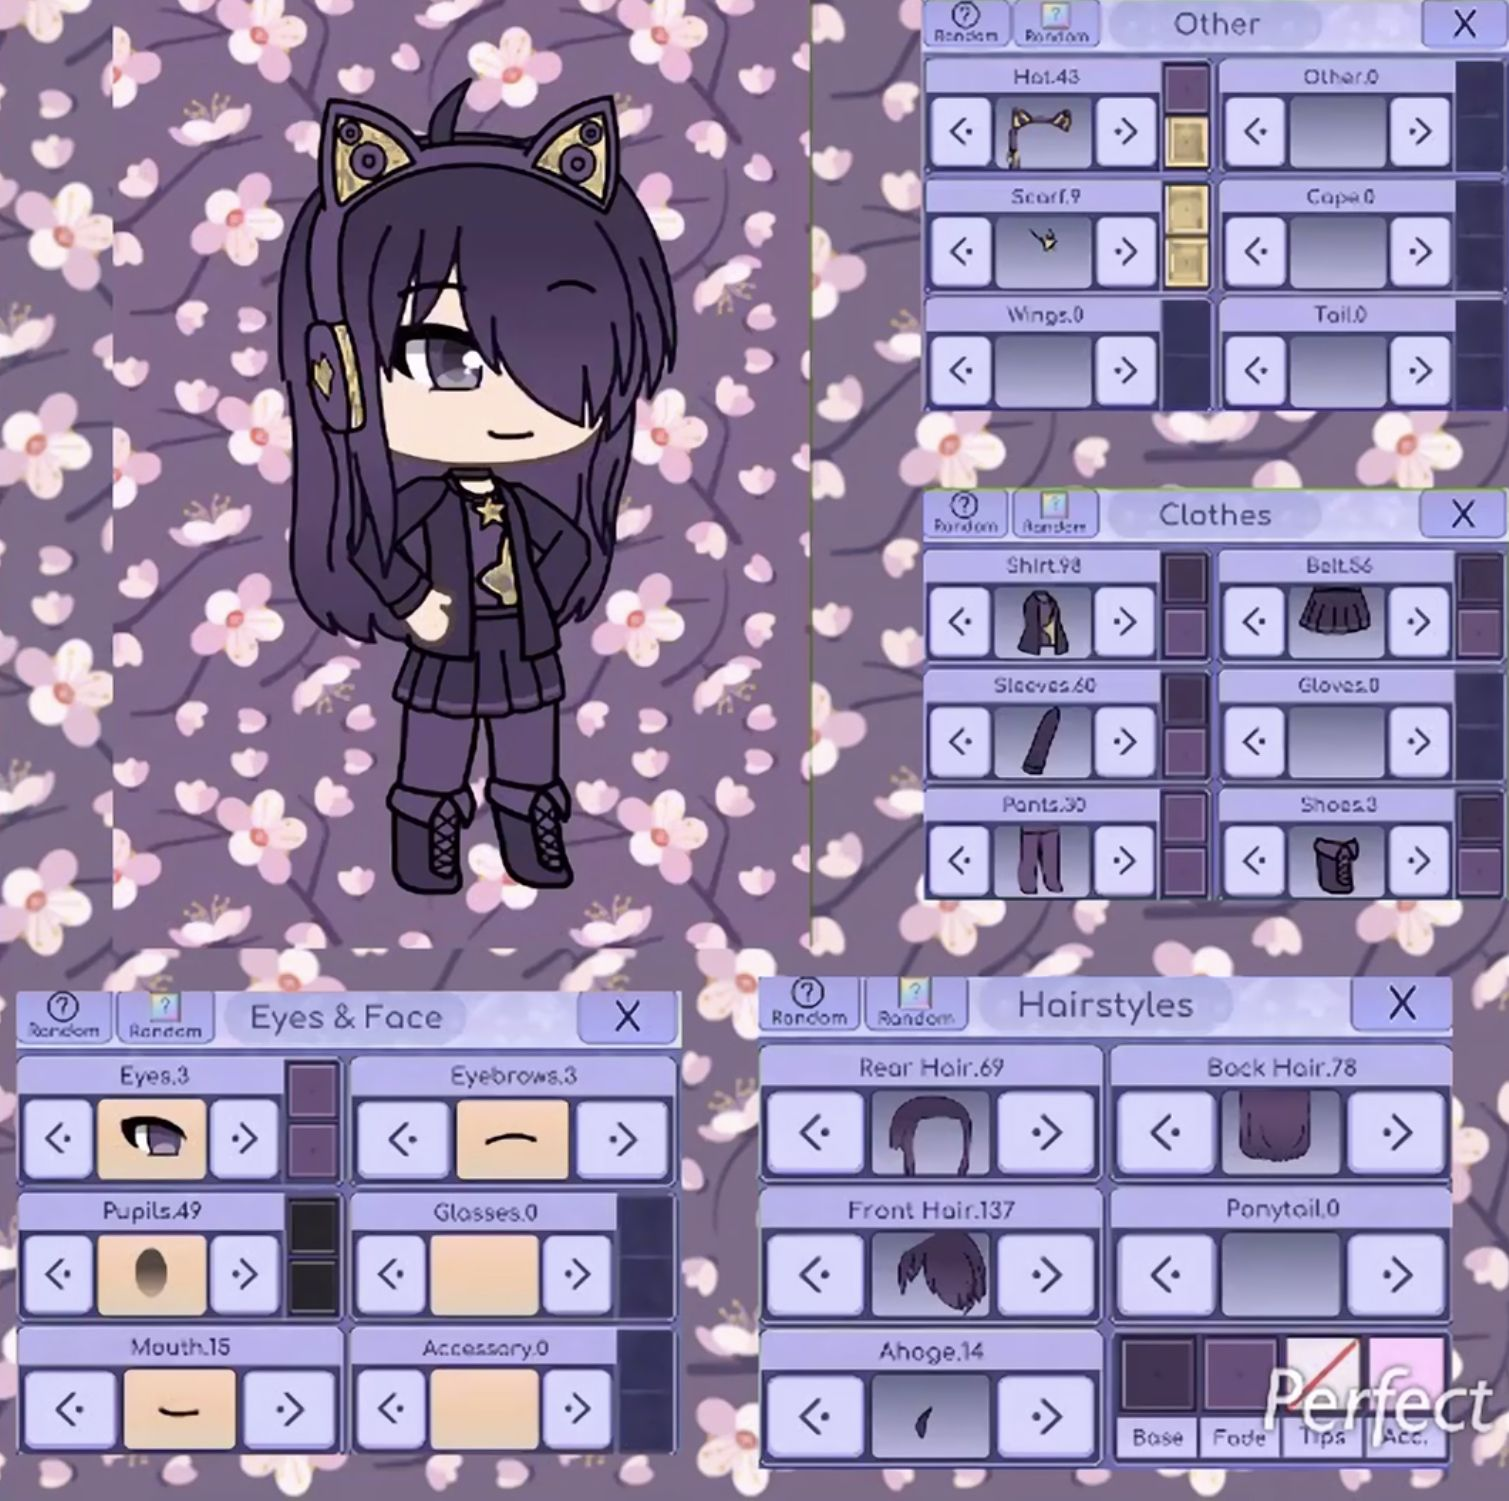 I Did A Green Screen With It That Is Why You Can Barley See The Numbers Sorry About That Anime Outfits Cute Anime Chibi Character Design